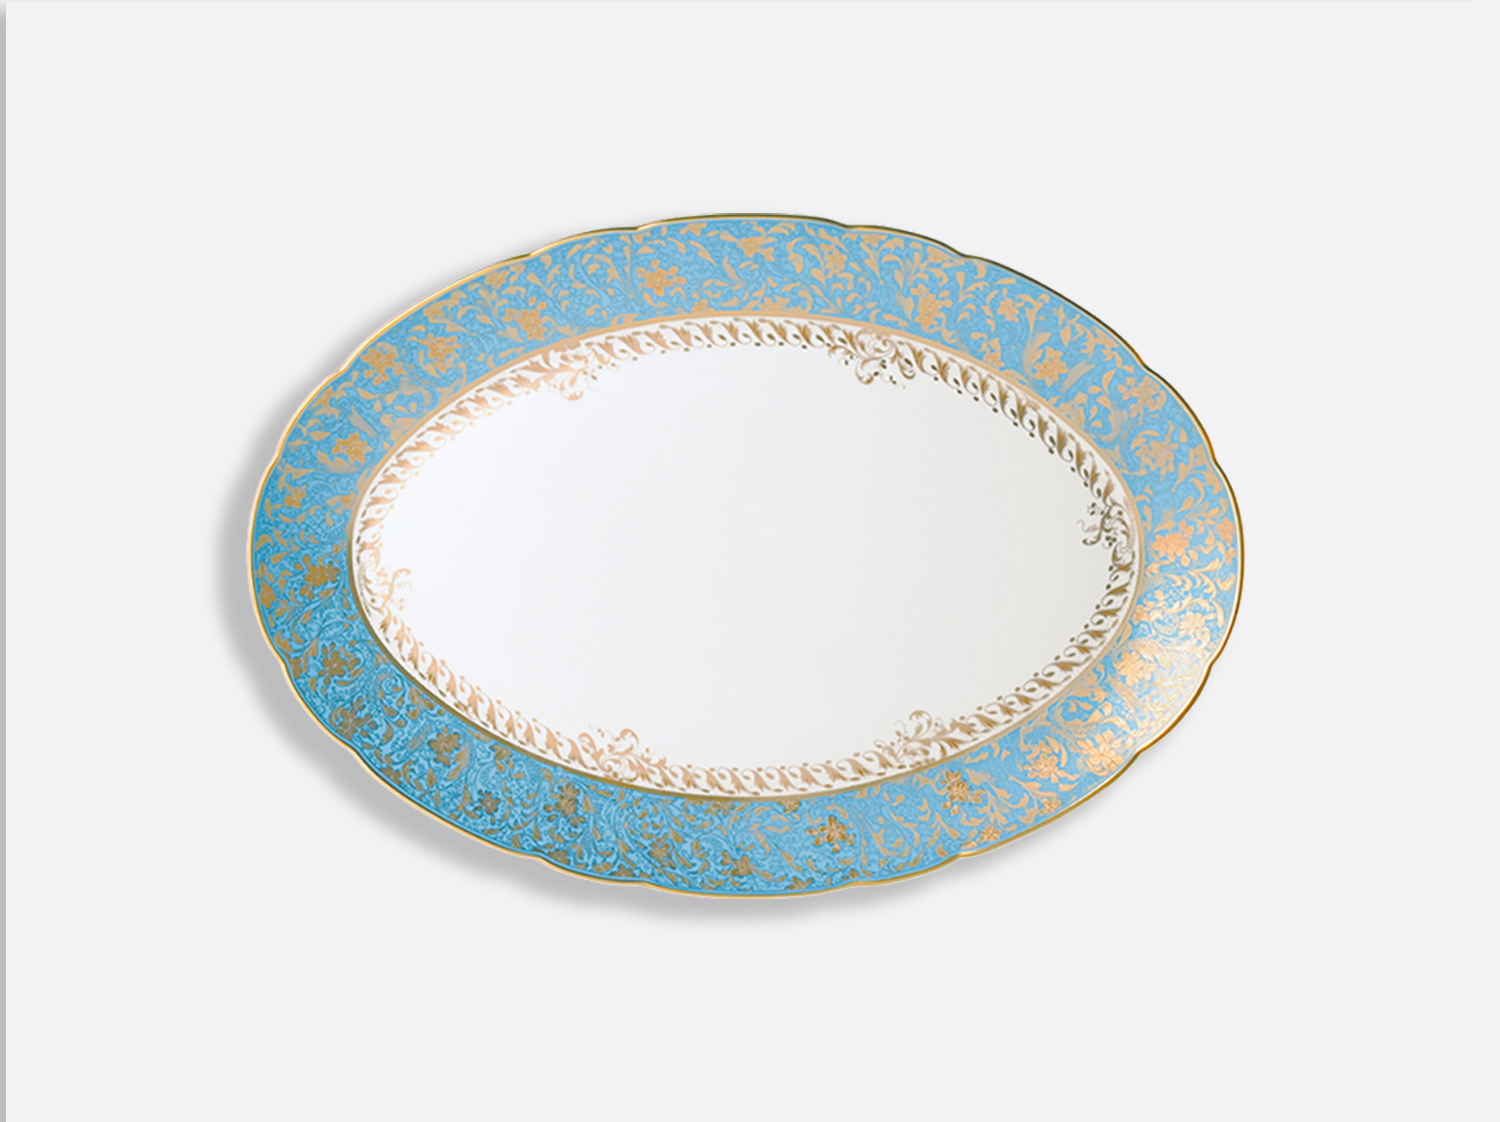 Plat ovale 38 cm en porcelaine de la collection Eden turquoise Bernardaud